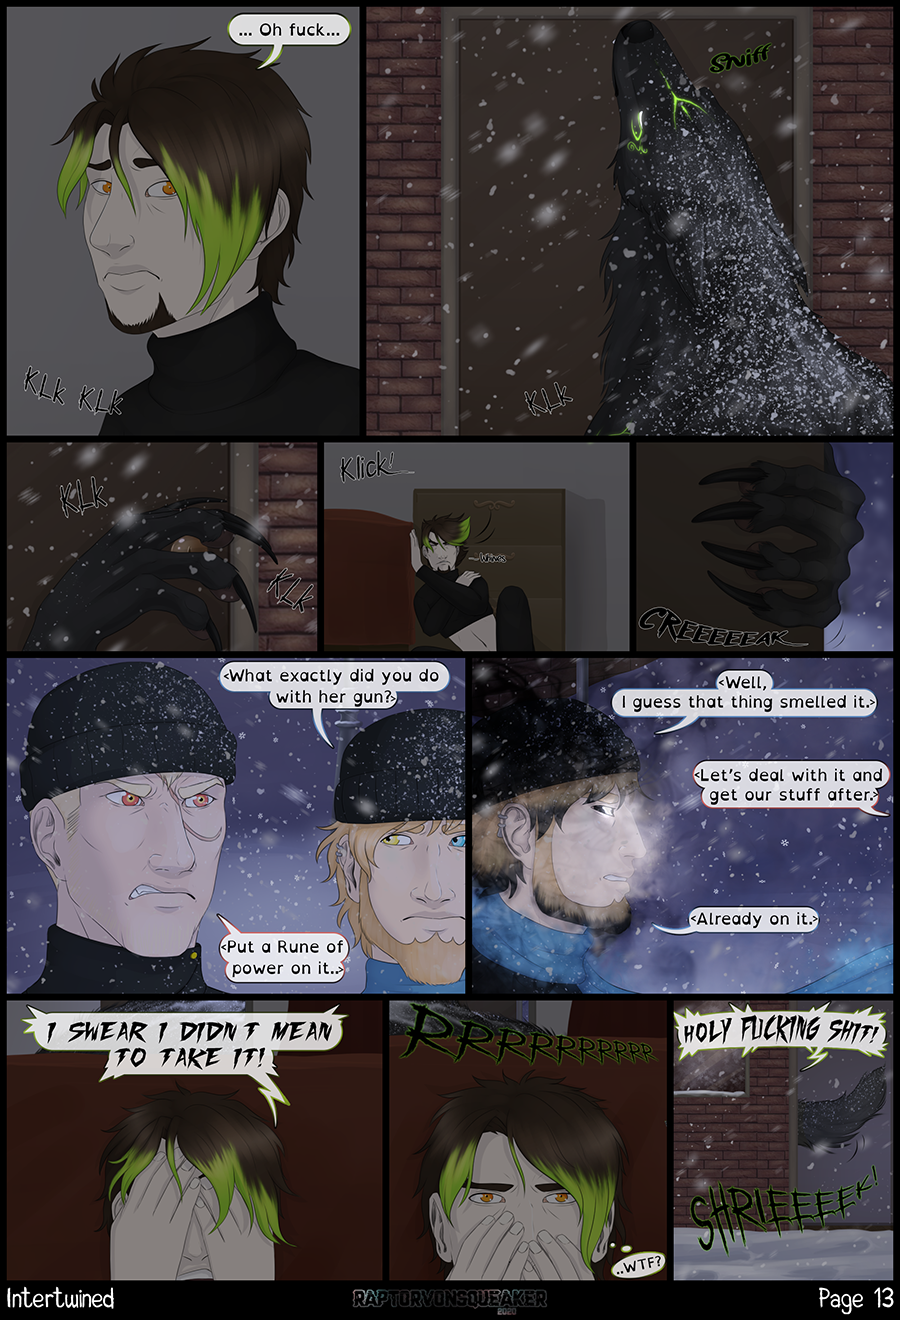 Page 13 - Good plans never works.